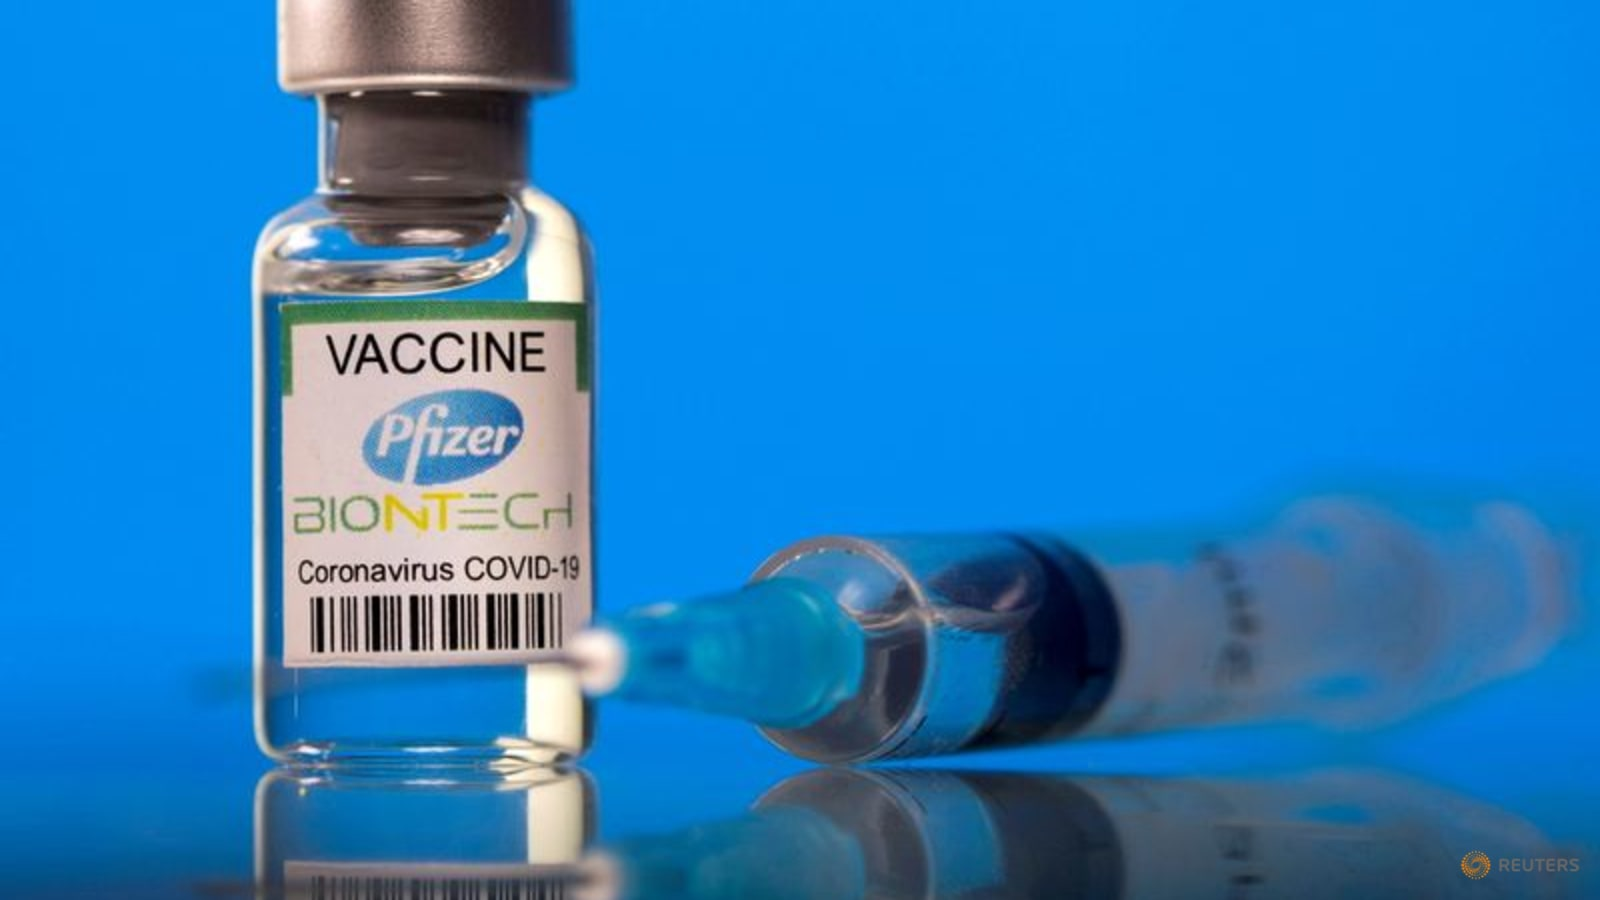 US to buy millions of Pfizer COVID-19 vaccine doses to donate to world: Report